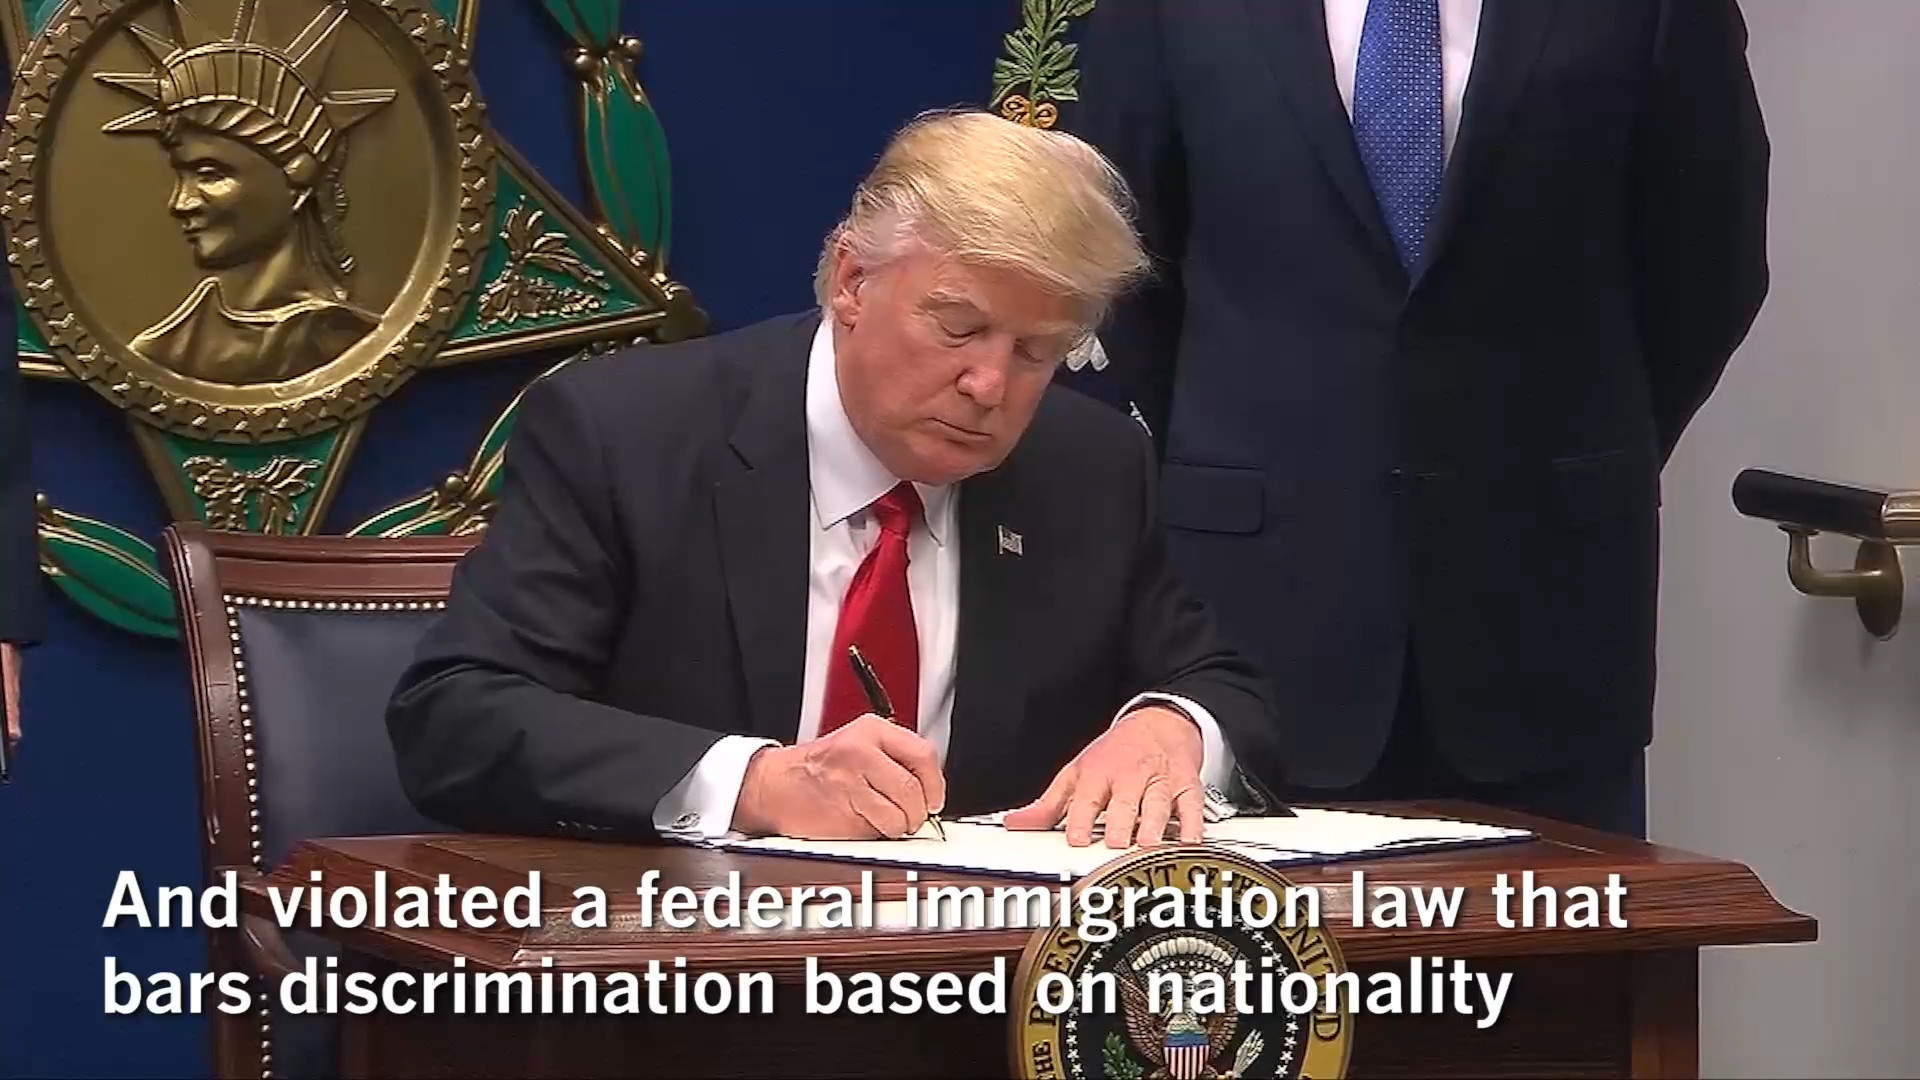 What Court Denied The Travel Ban